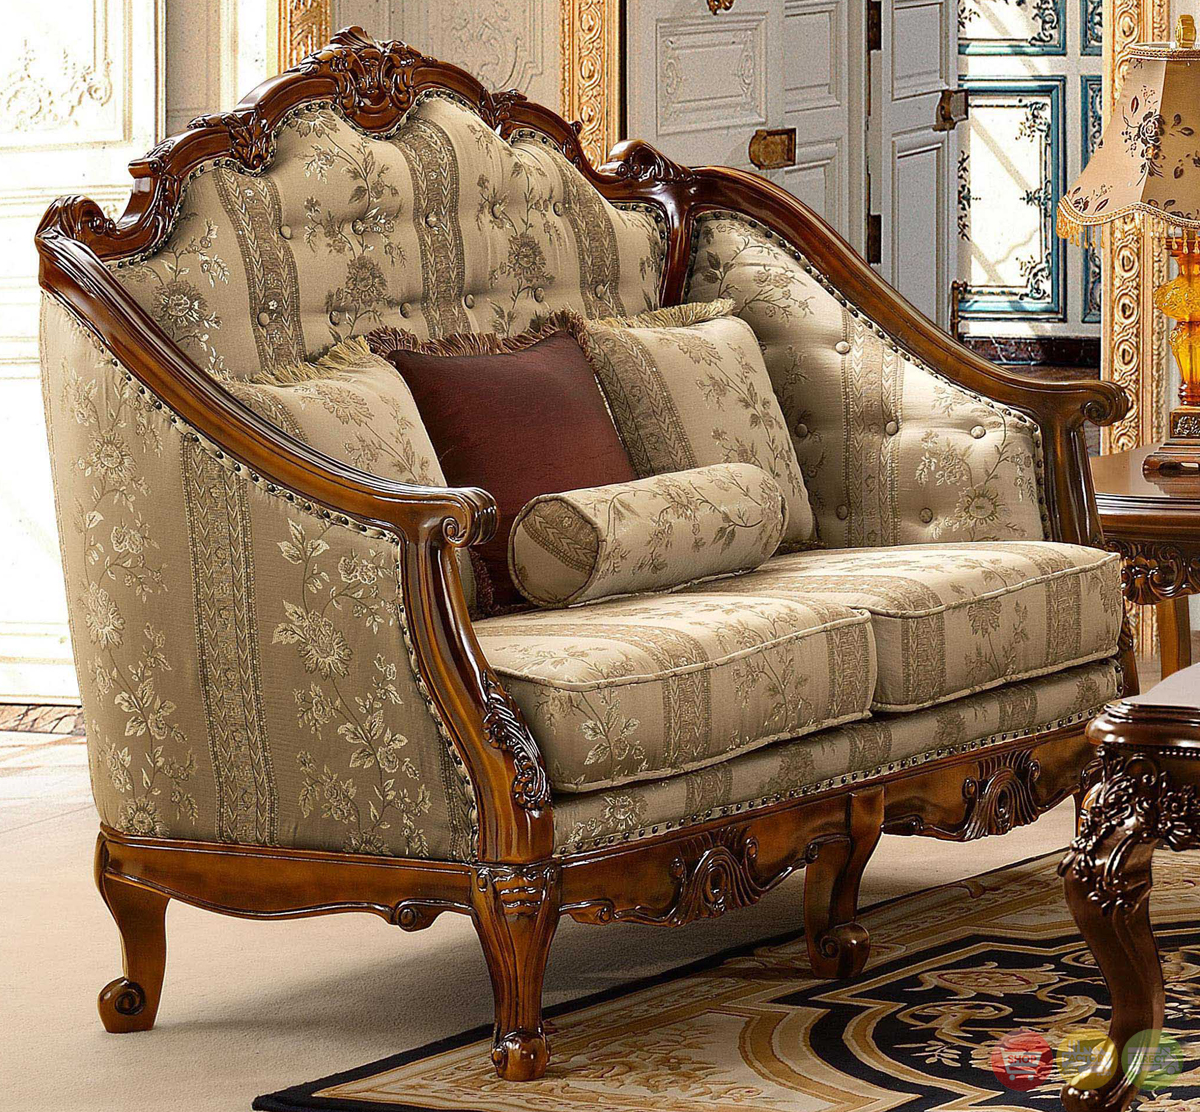 antique style luxury formal living room furniture set hd 953. Black Bedroom Furniture Sets. Home Design Ideas